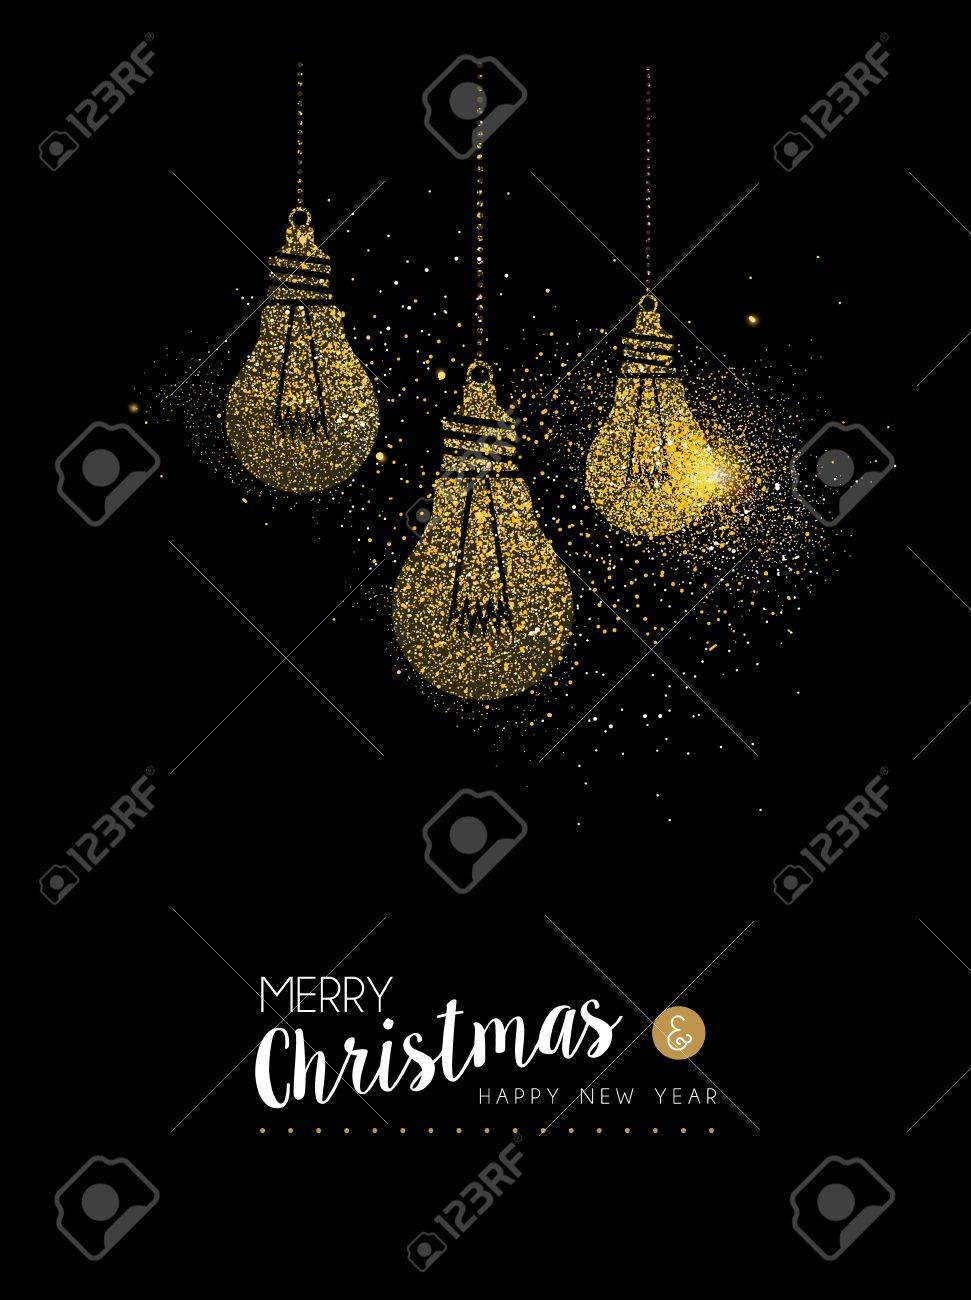 Merry Christmas And Happy New Year Luxury Greeting Card Design Gold Light Bulb Decoration Made